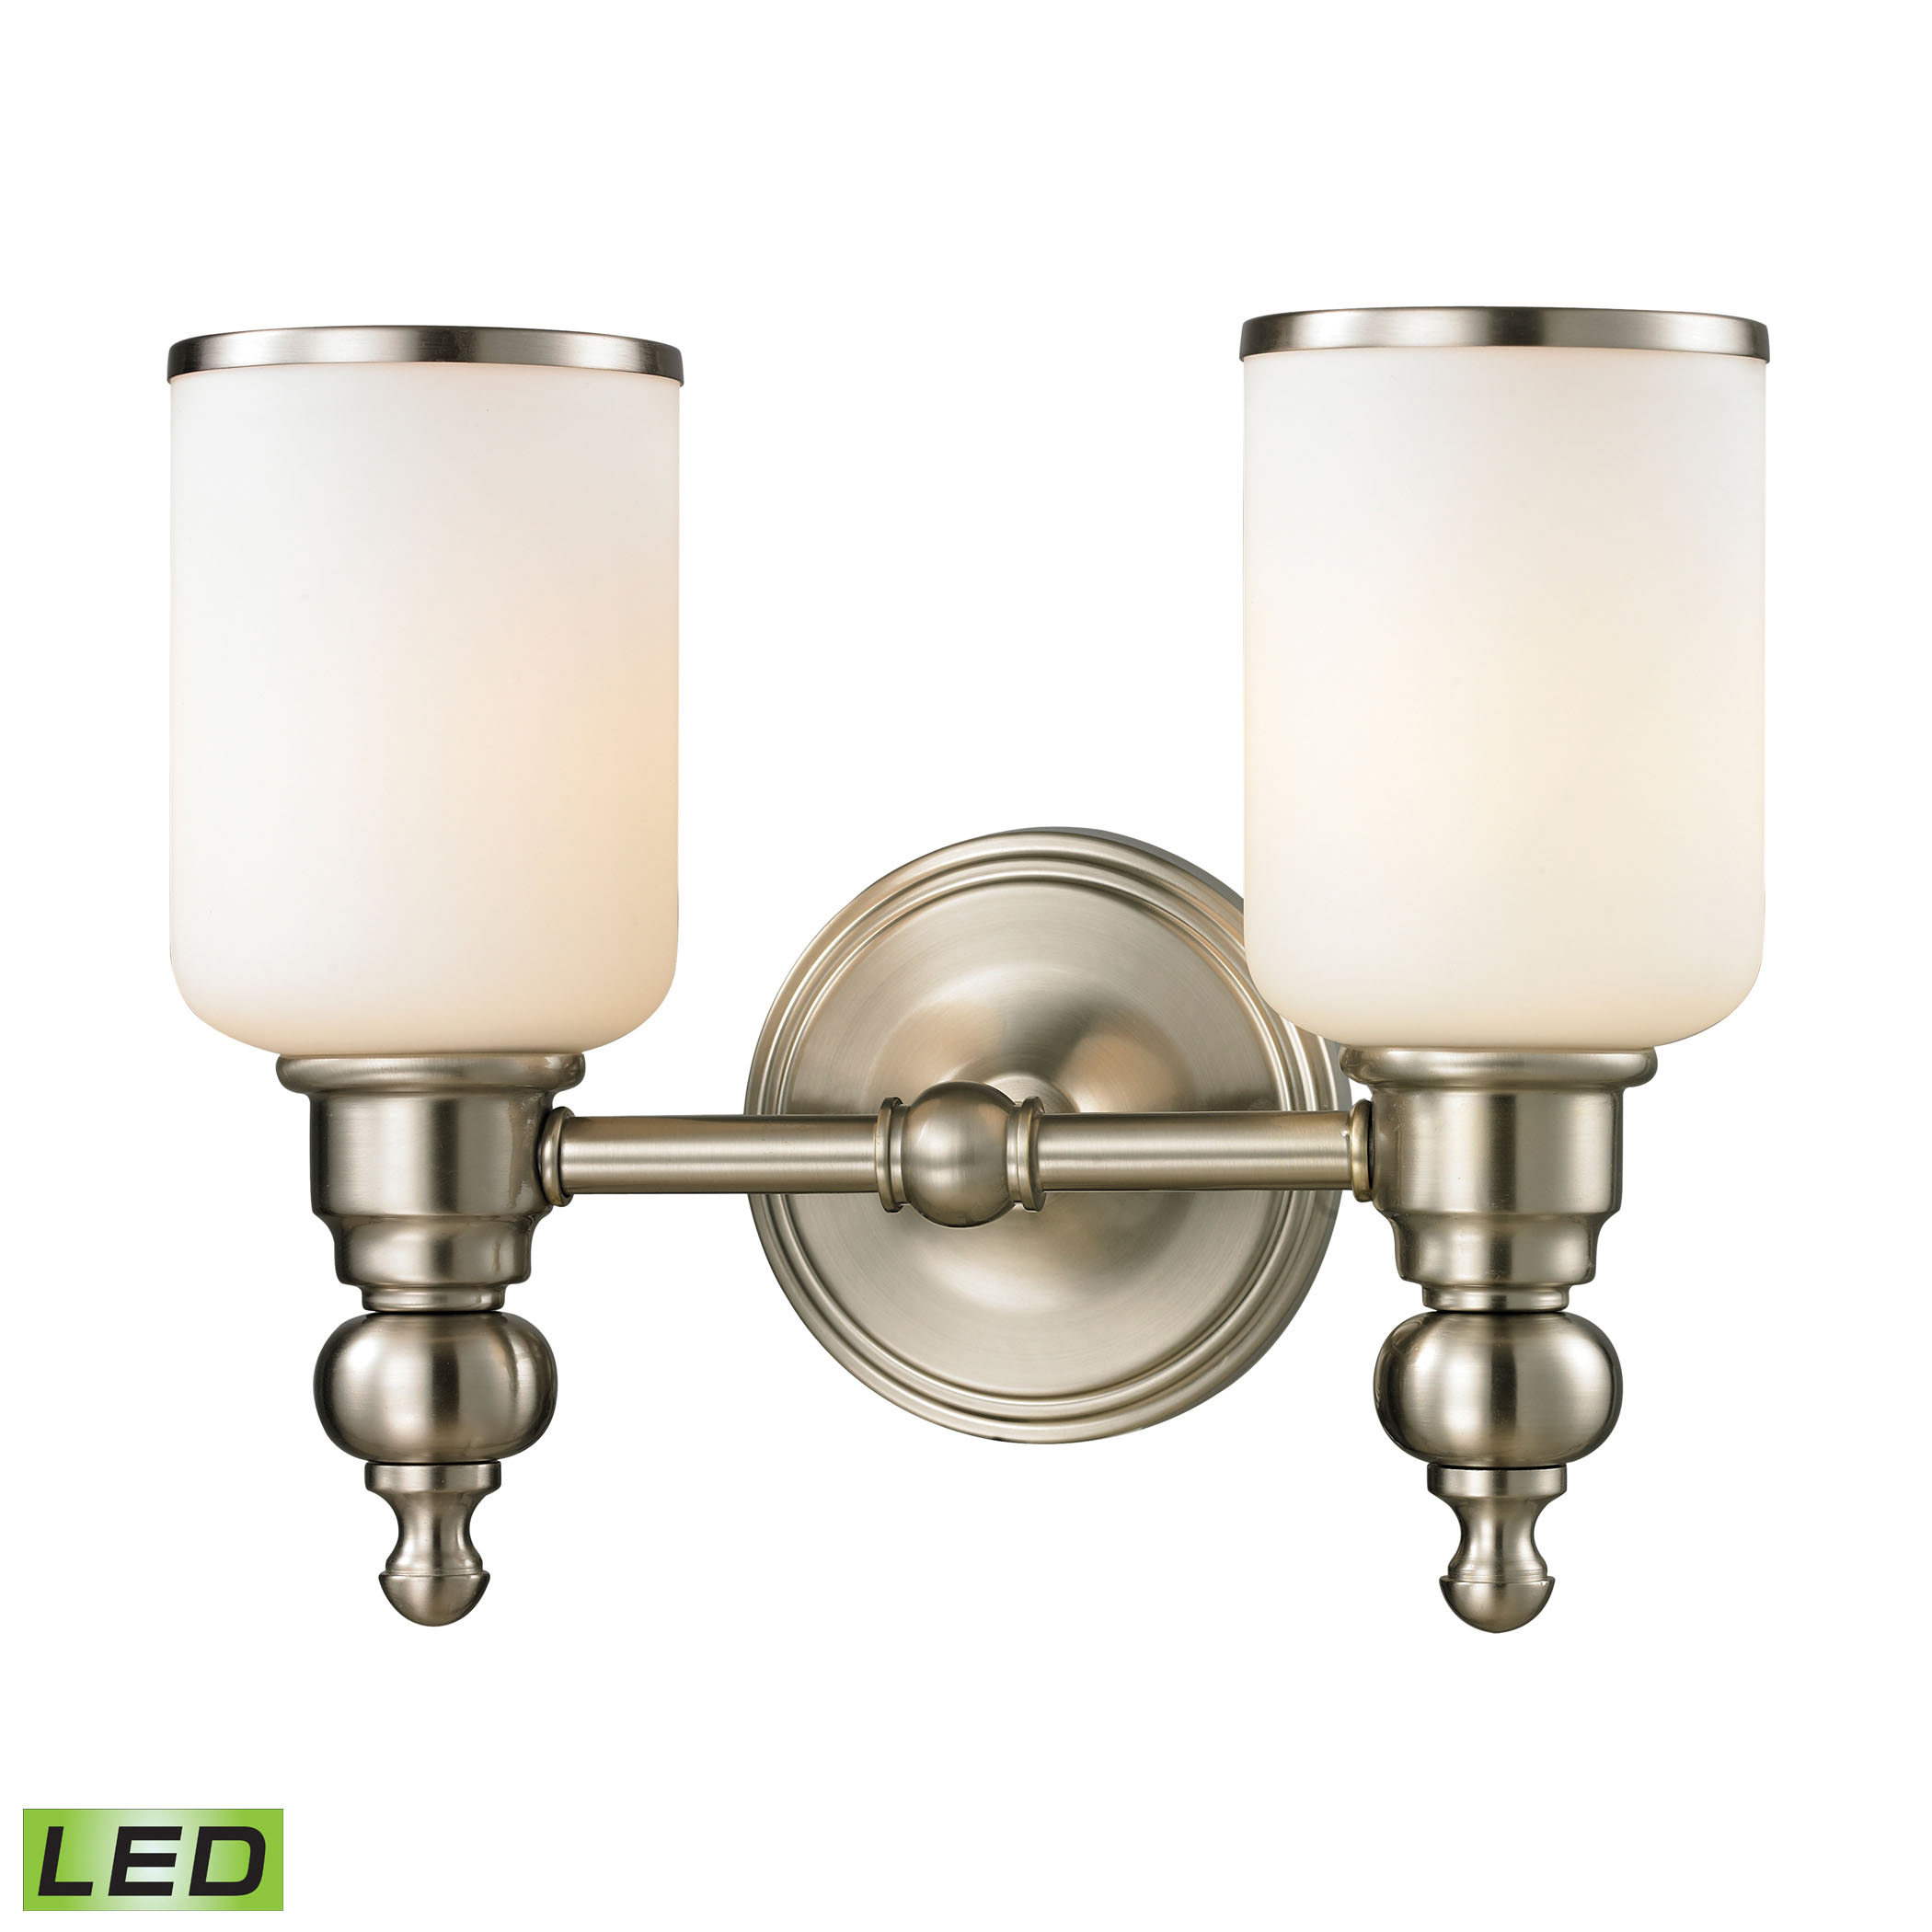 Bristol Collection 2 light bath in Brushed Nickel - LED, 800 Lumens (1600 Lumens Total) with Full S